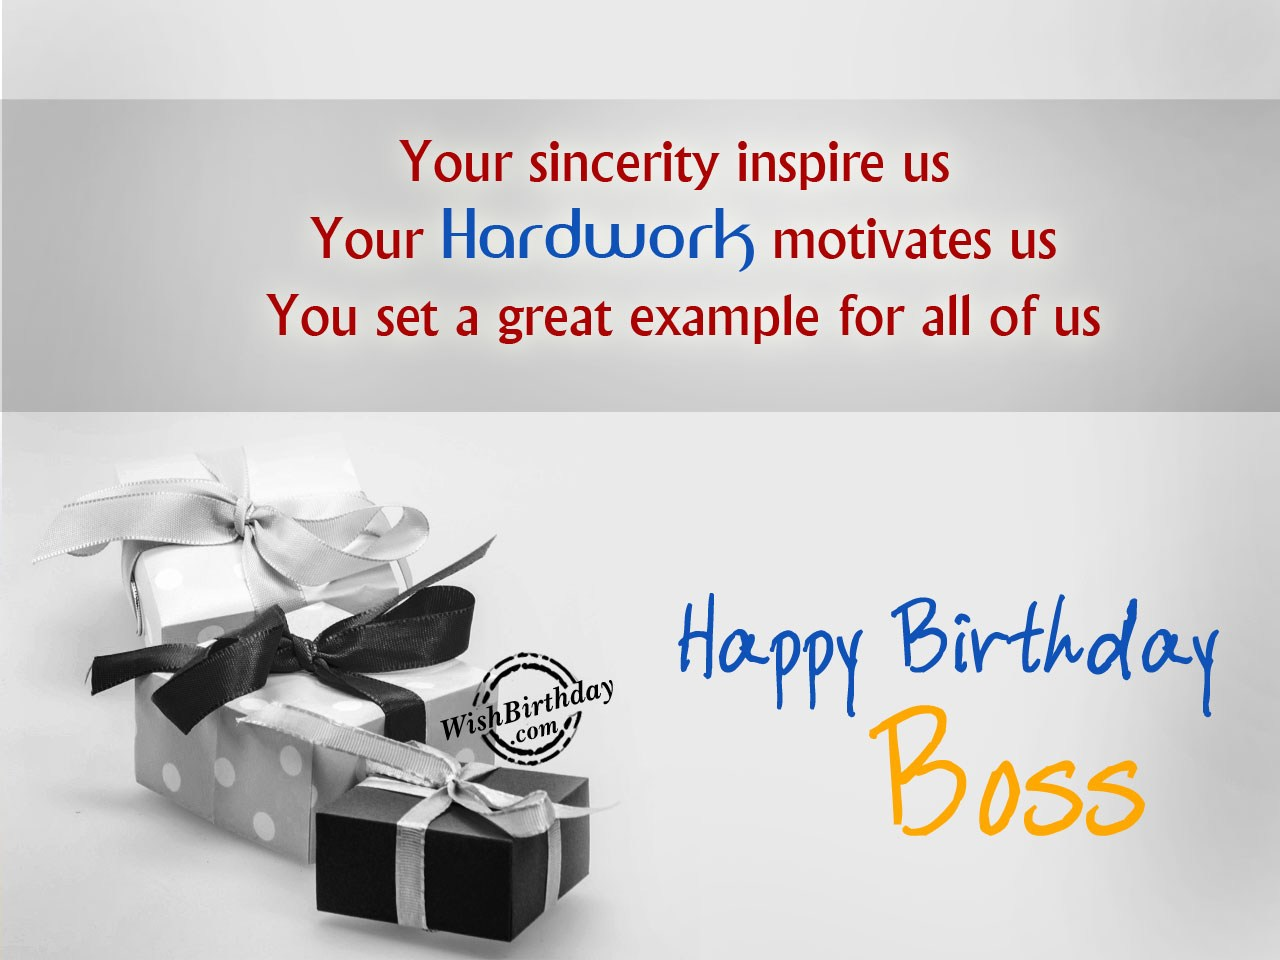 birthday wishes boss card ; d8c4a0cfcdbf2482676ad250dabfbc76